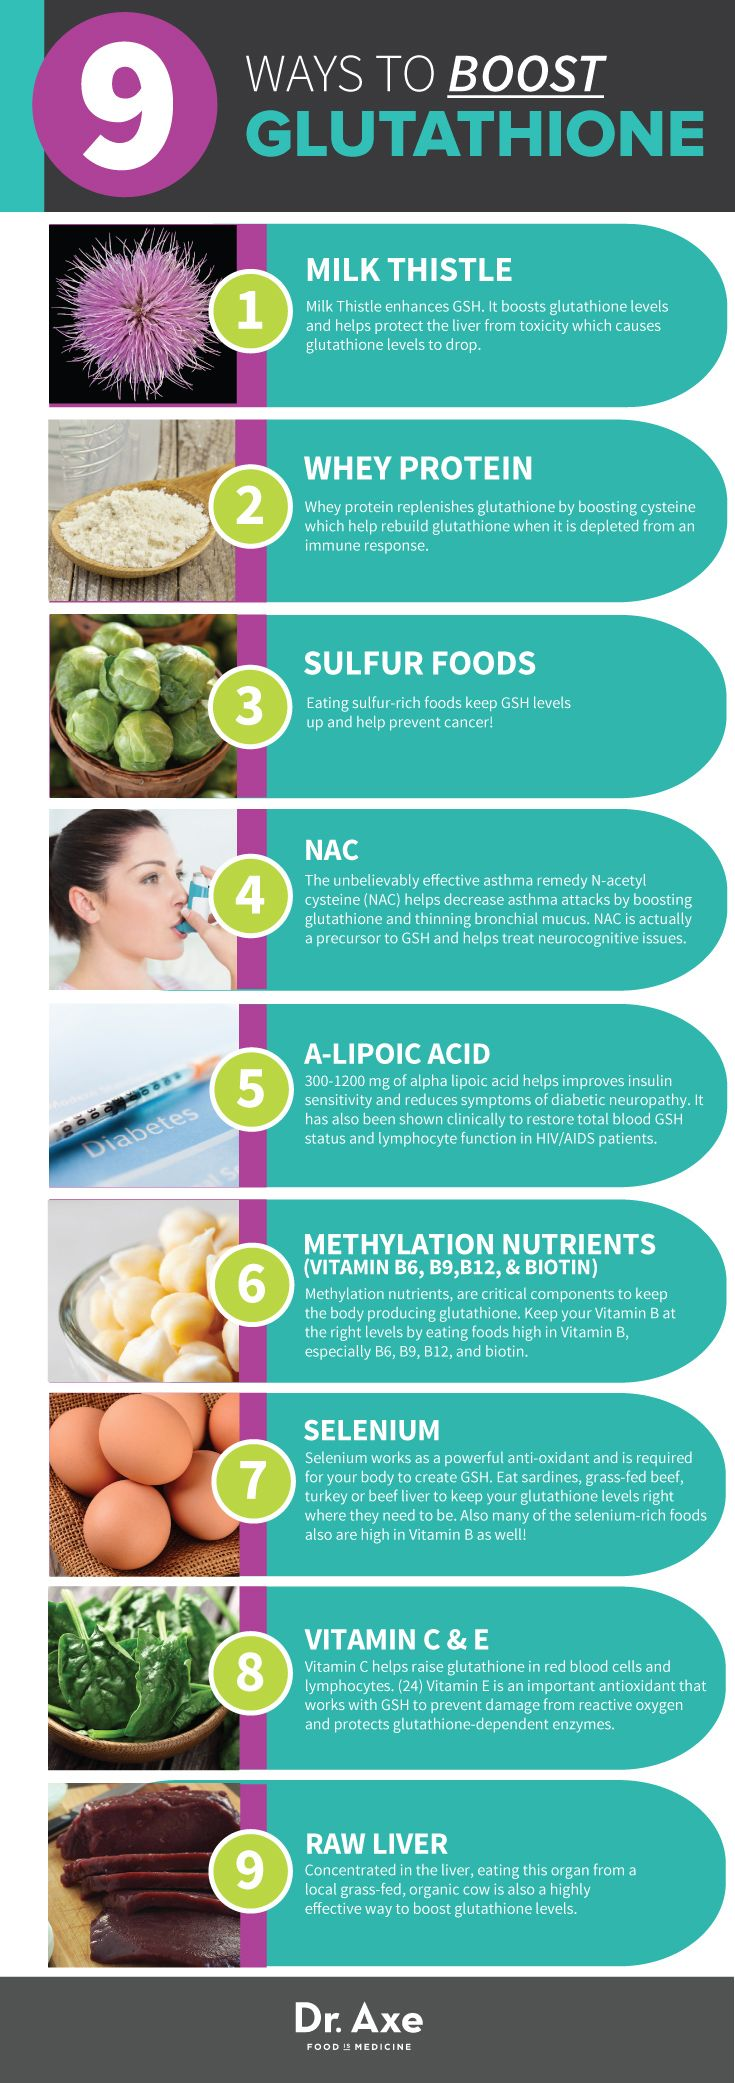 Glutathione Top 9 Foods & Supplements to Boost Health